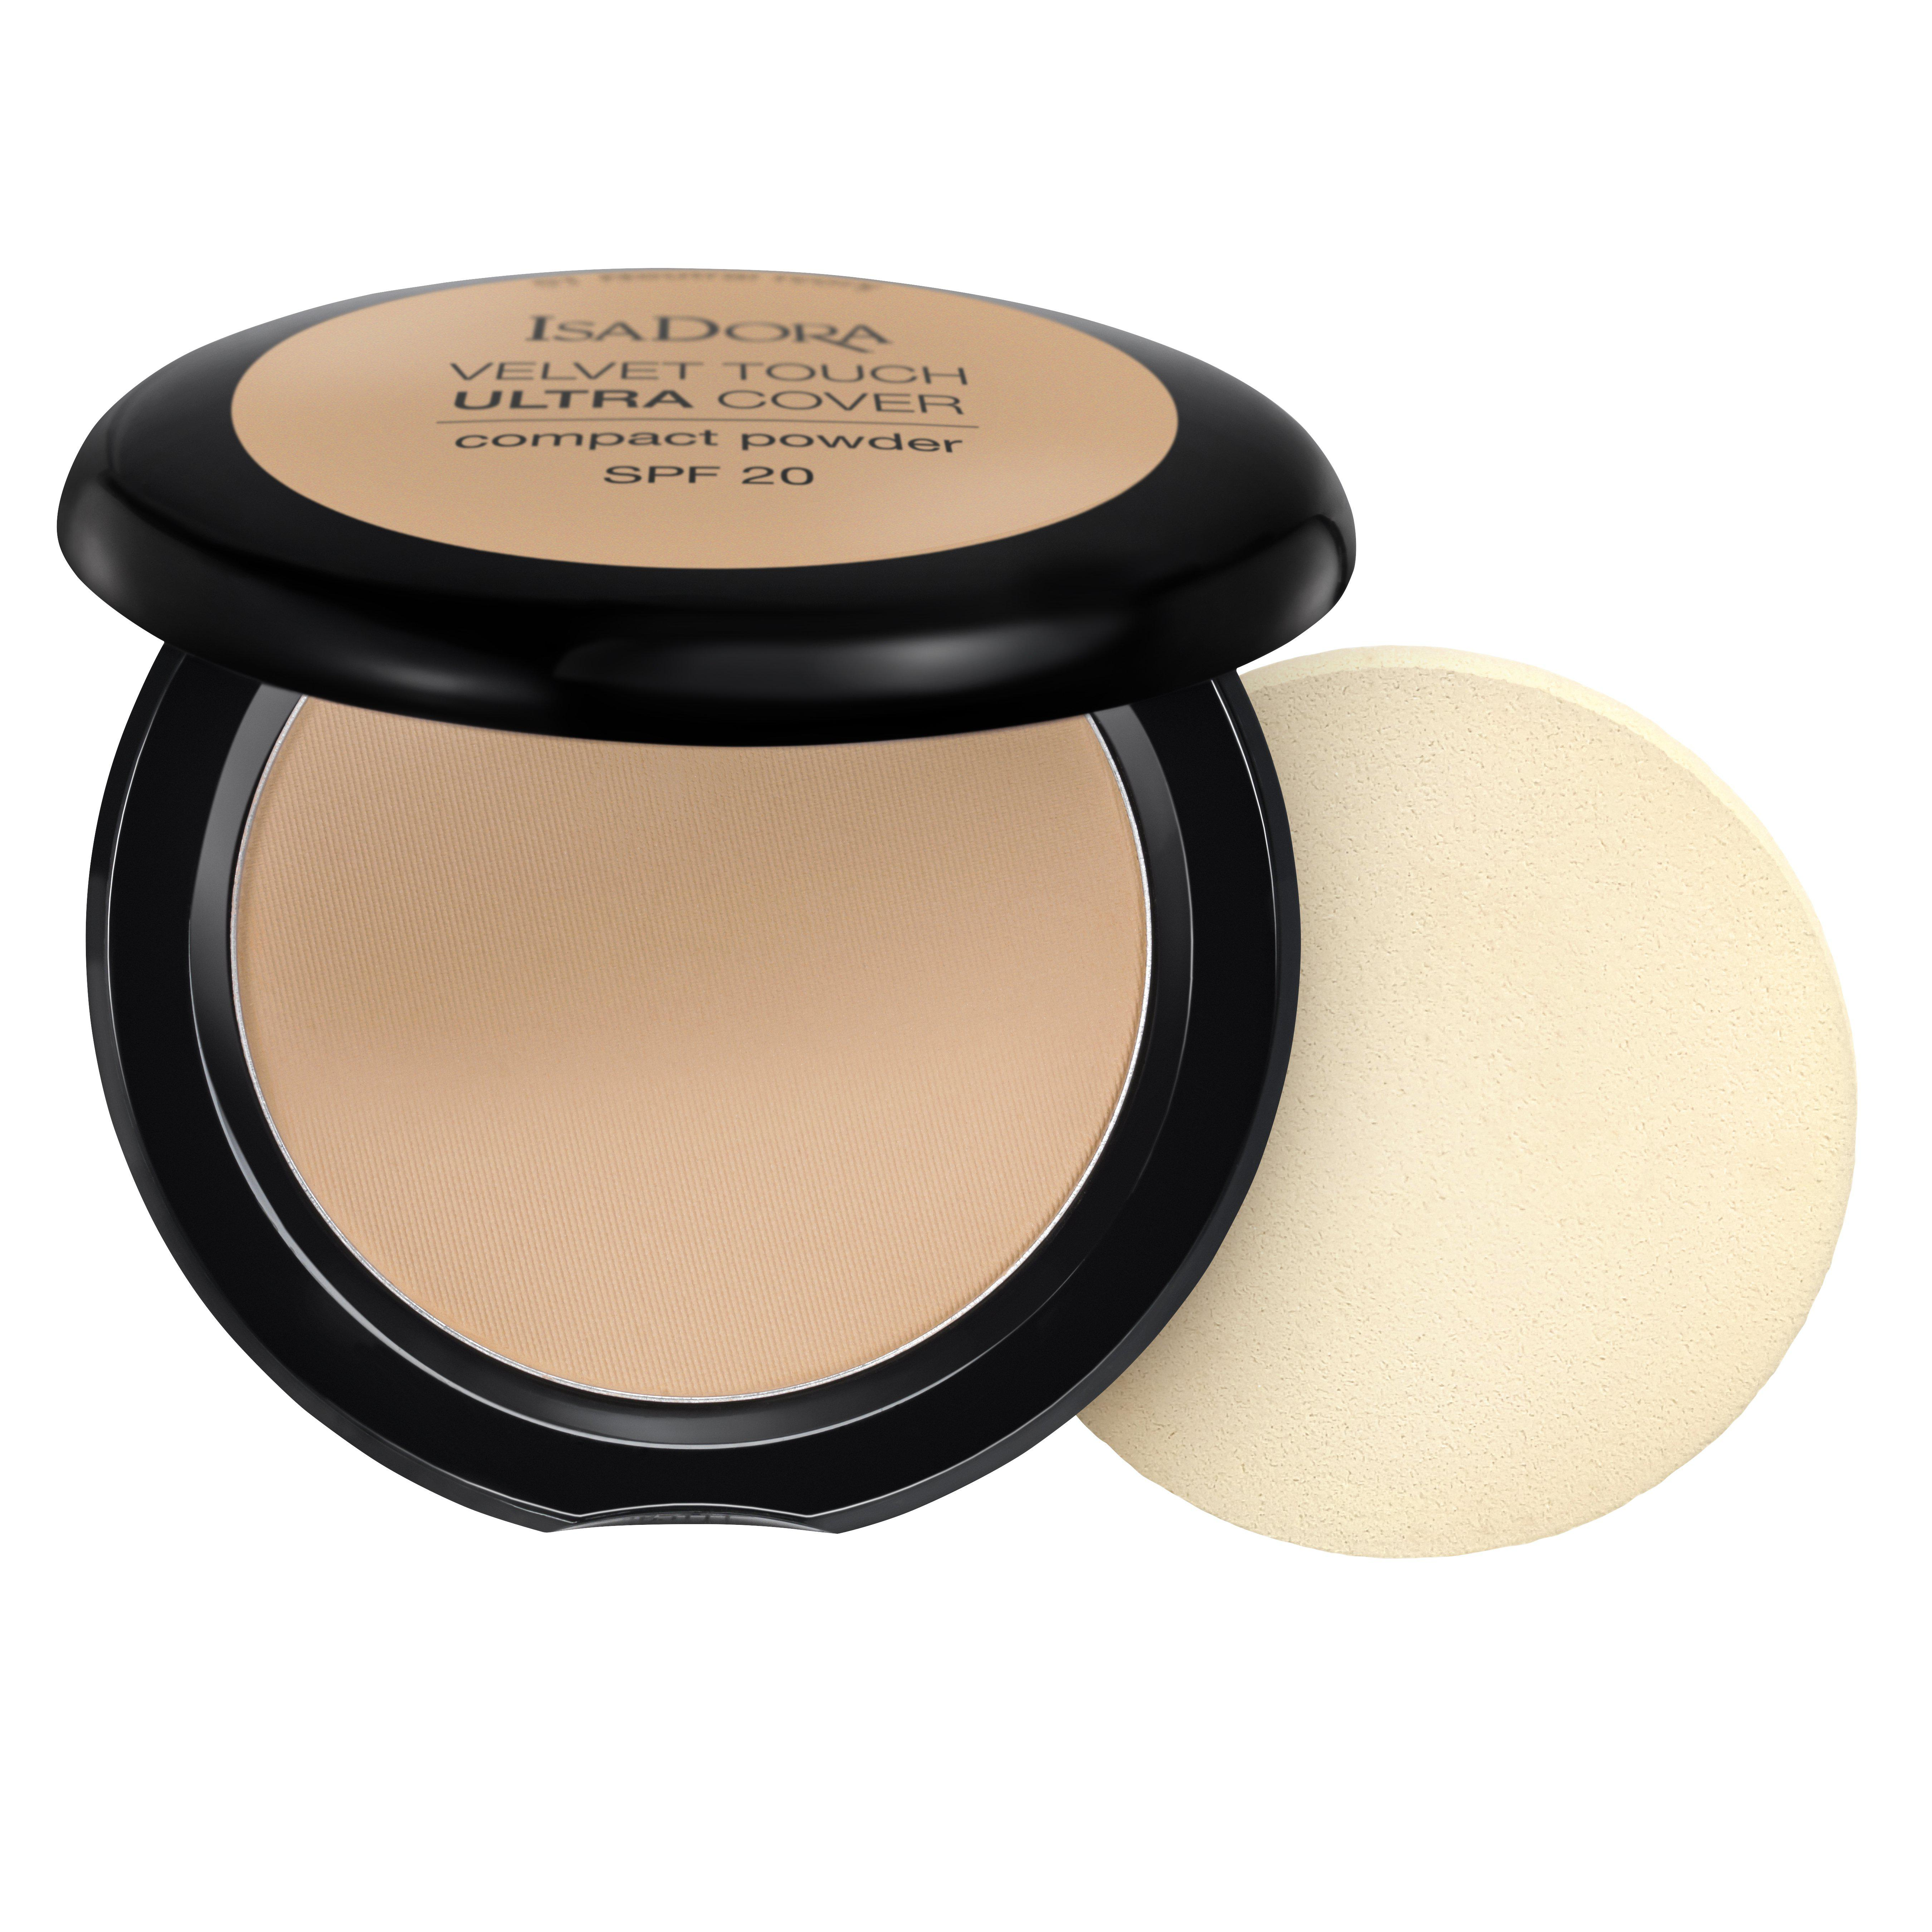 ISADORA. Velvet Touch Ultra Cover Compact Power